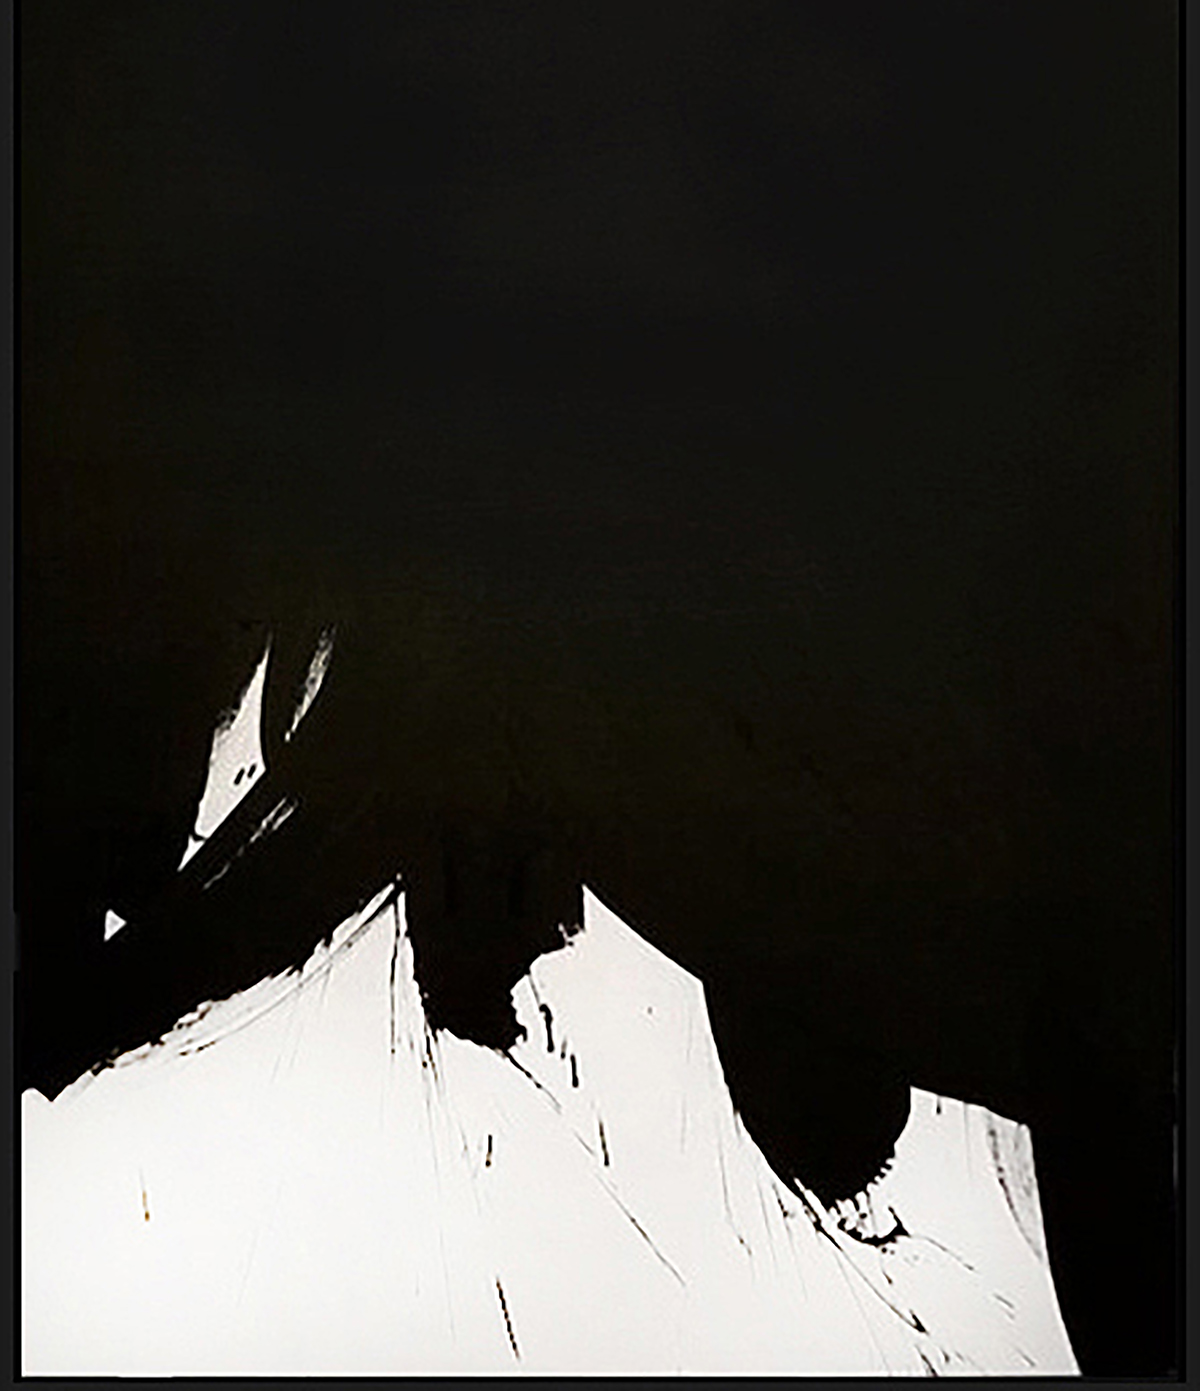 "Black & White #5, 2018, acrylic on canvas, 48x36"" (122 x 91.4 cm)"